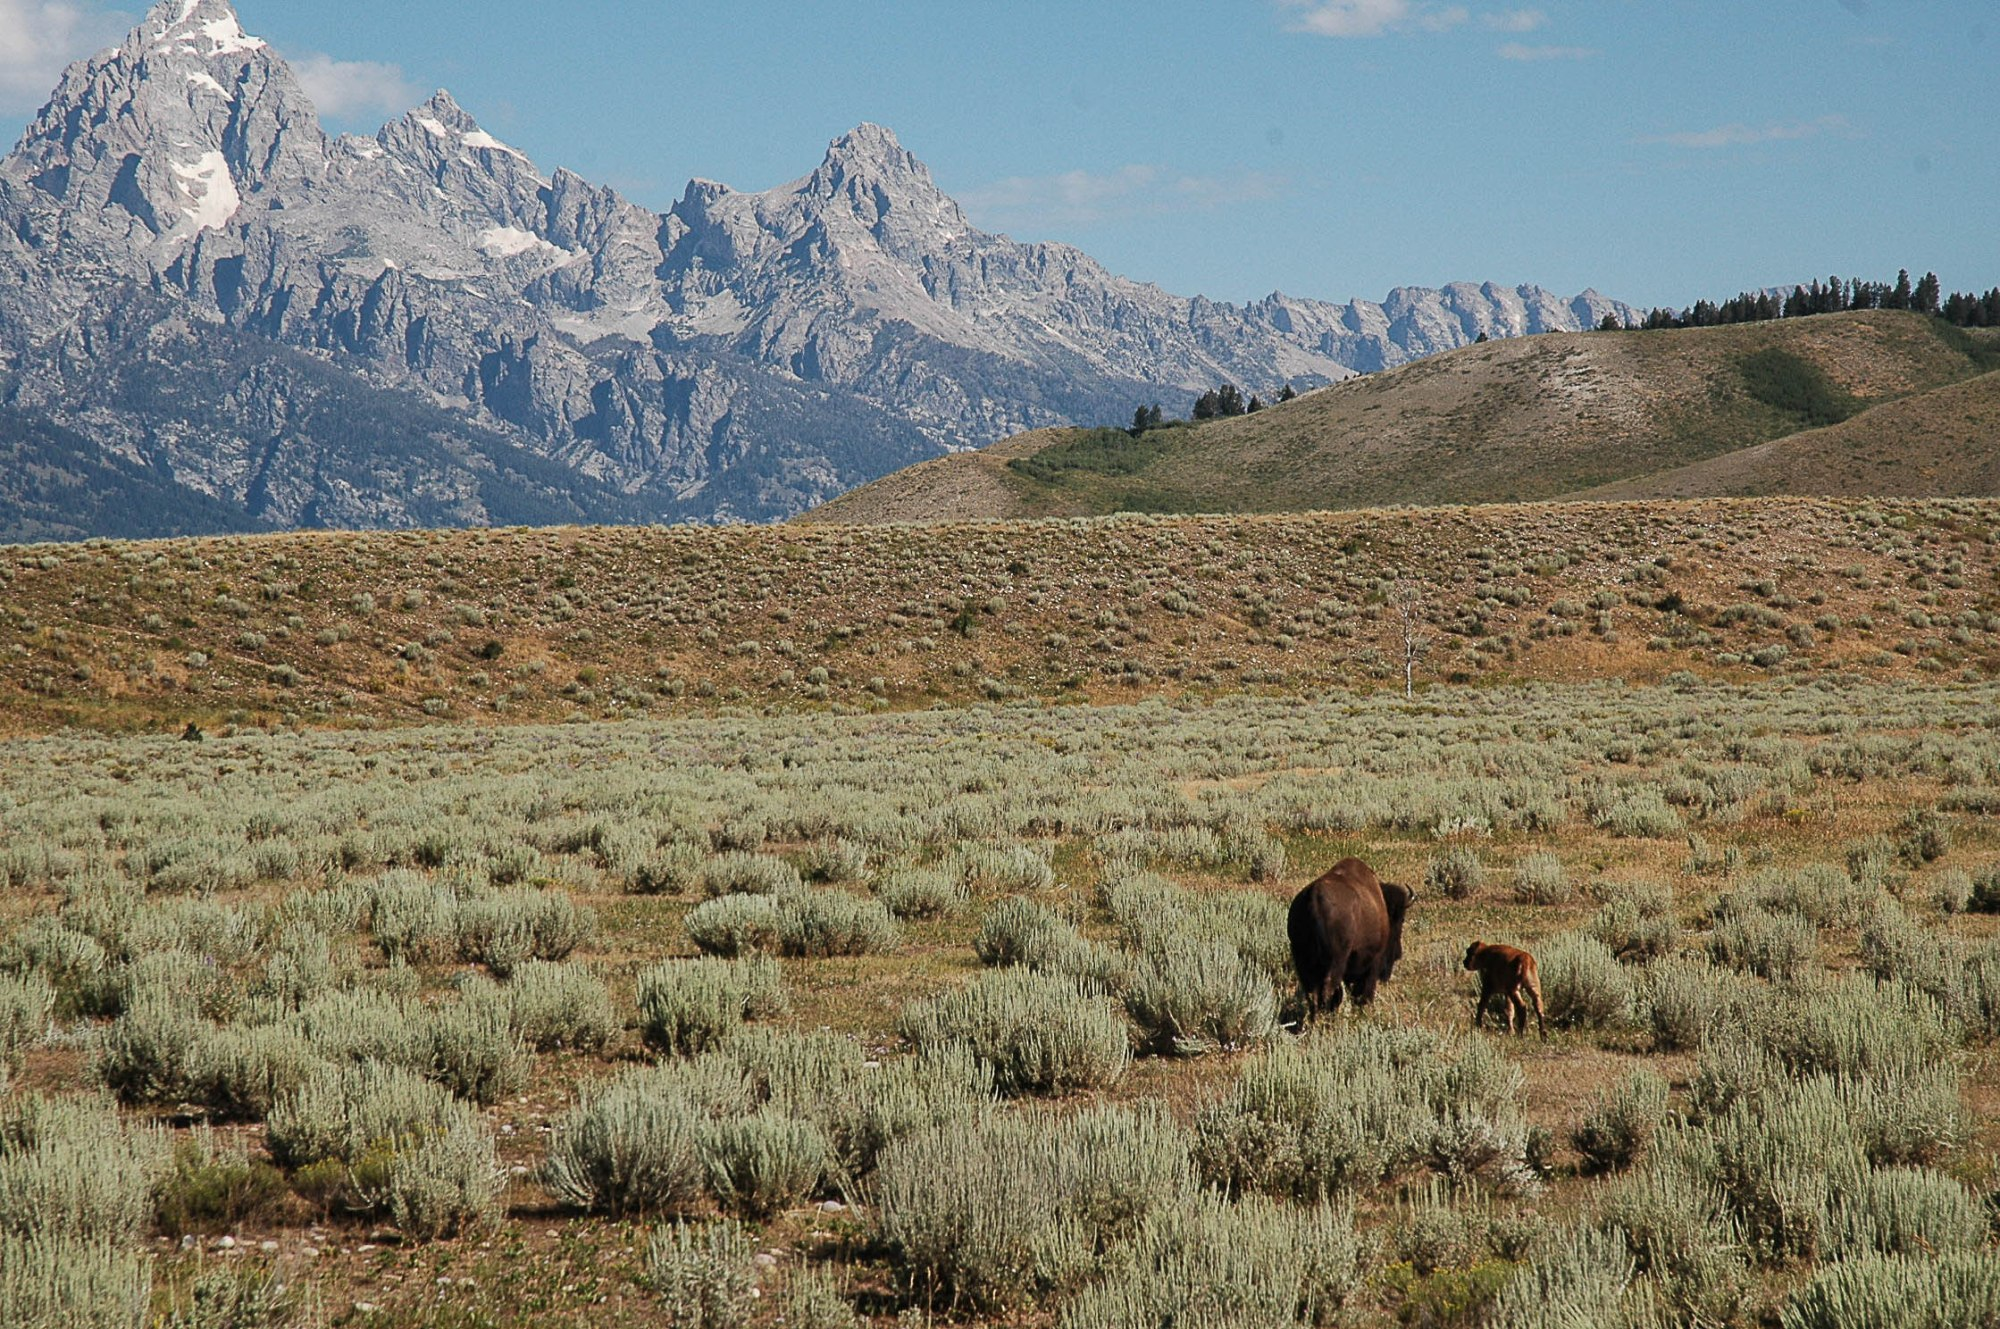 All the beautiful places. The Tetons